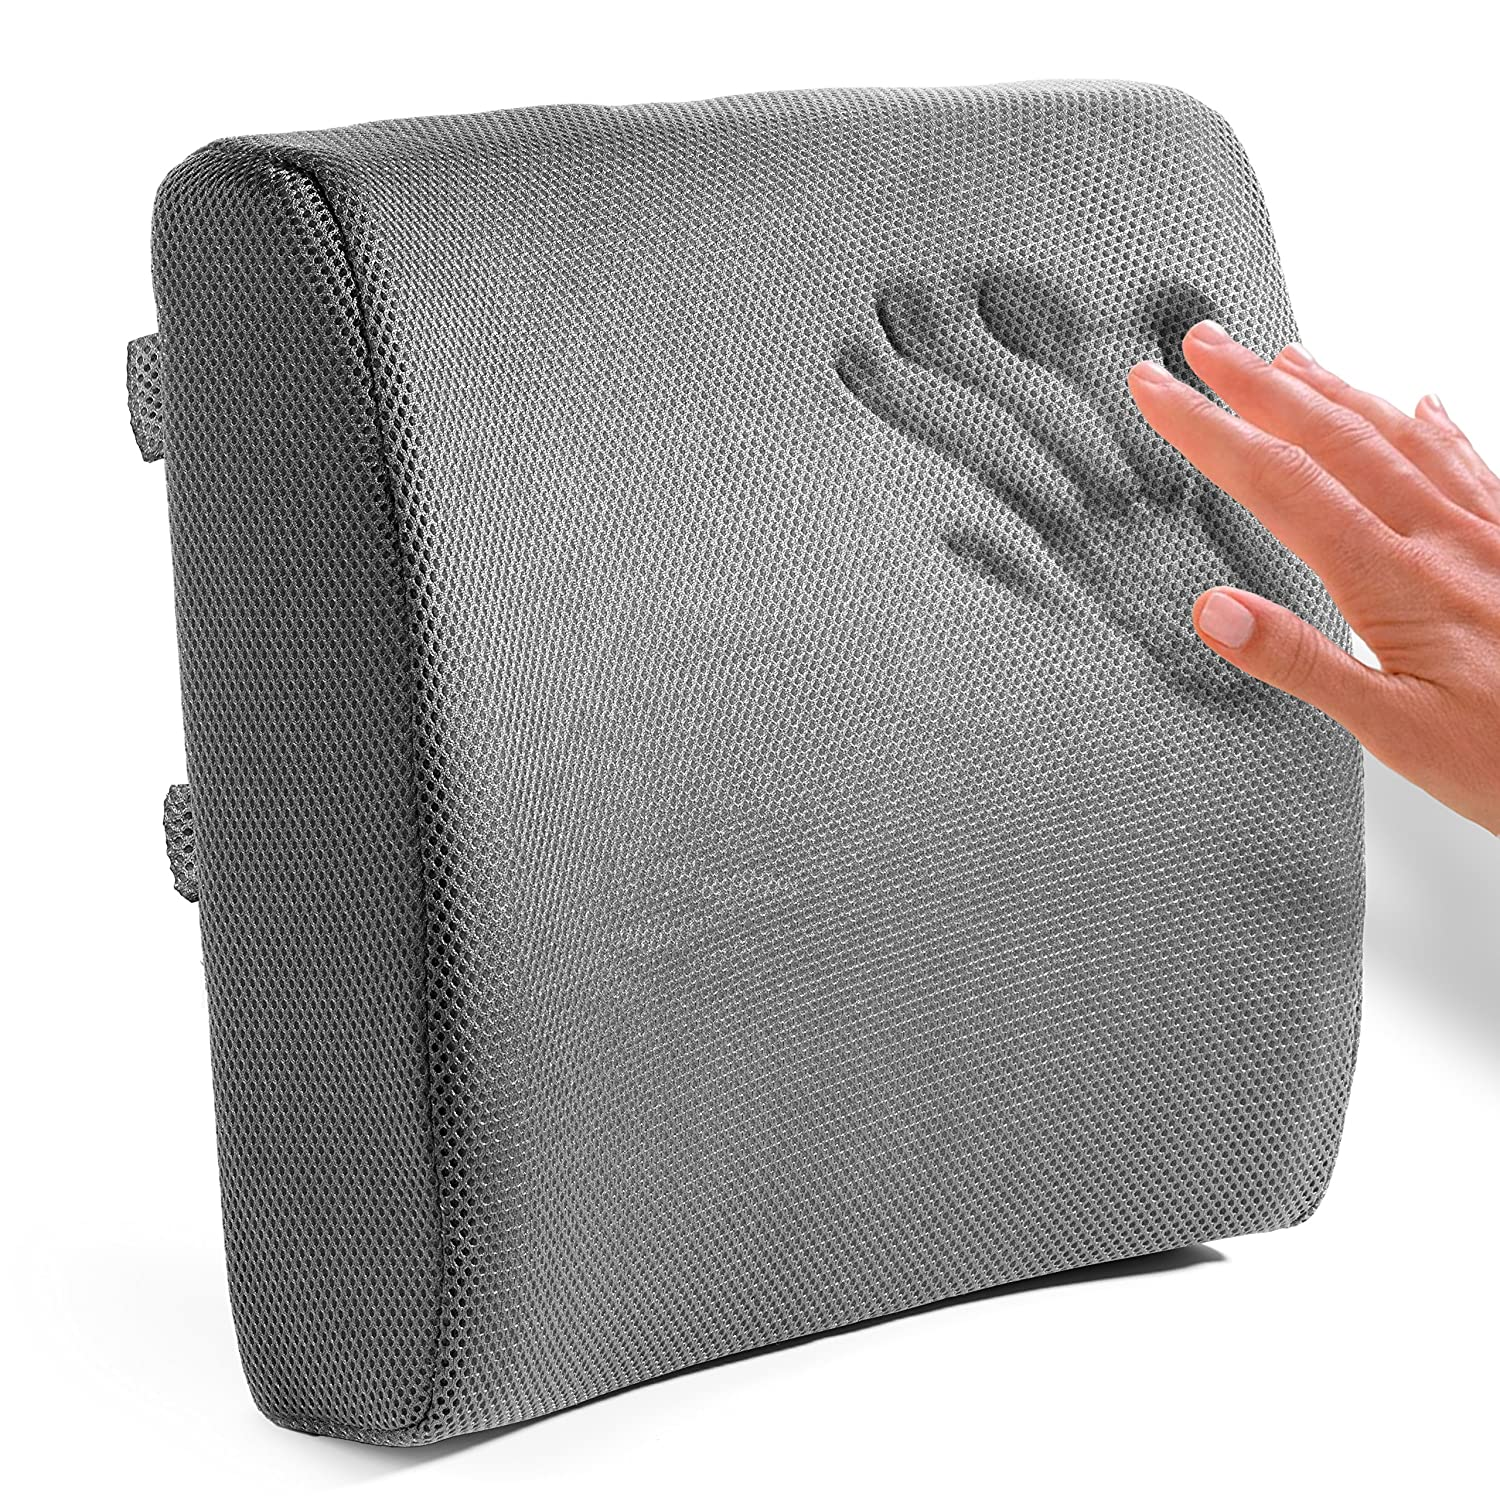 Practical Pillow Guide Best Back Support For fice Chairs